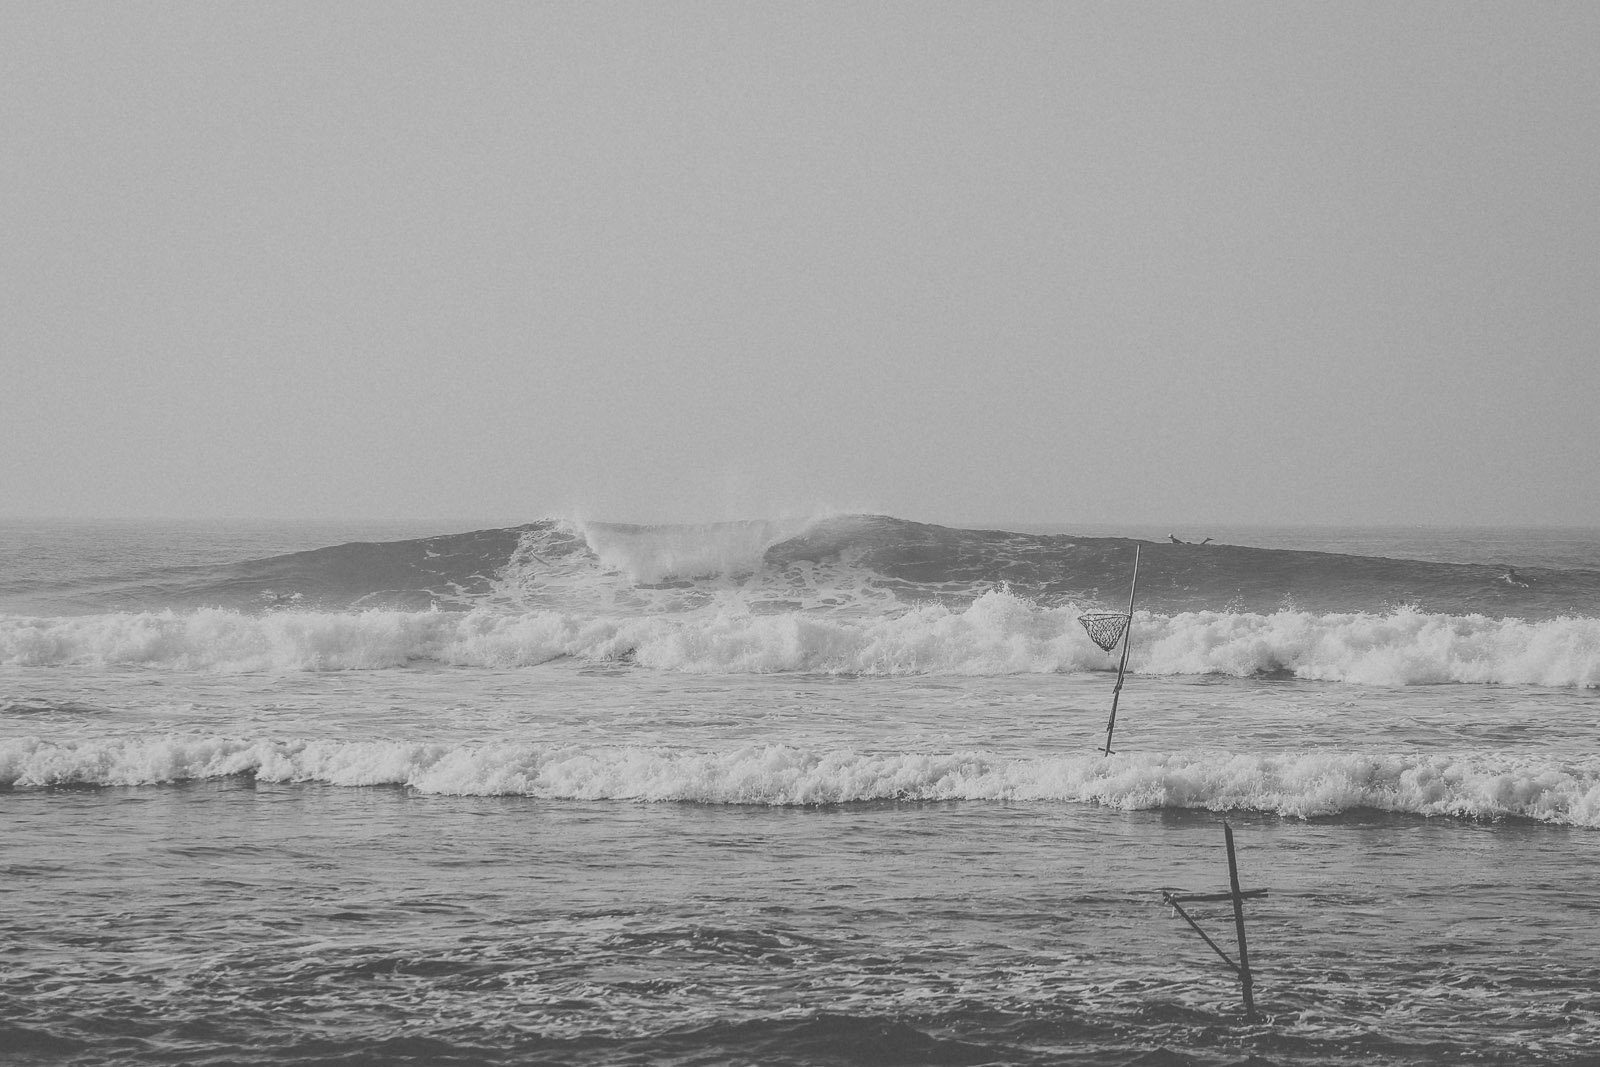 Sri Lanka-Ahangama-Kabalana-The rock-Surf-Barrel-Big swell-Midigama-Surfing-travel-blog-IMG_8790